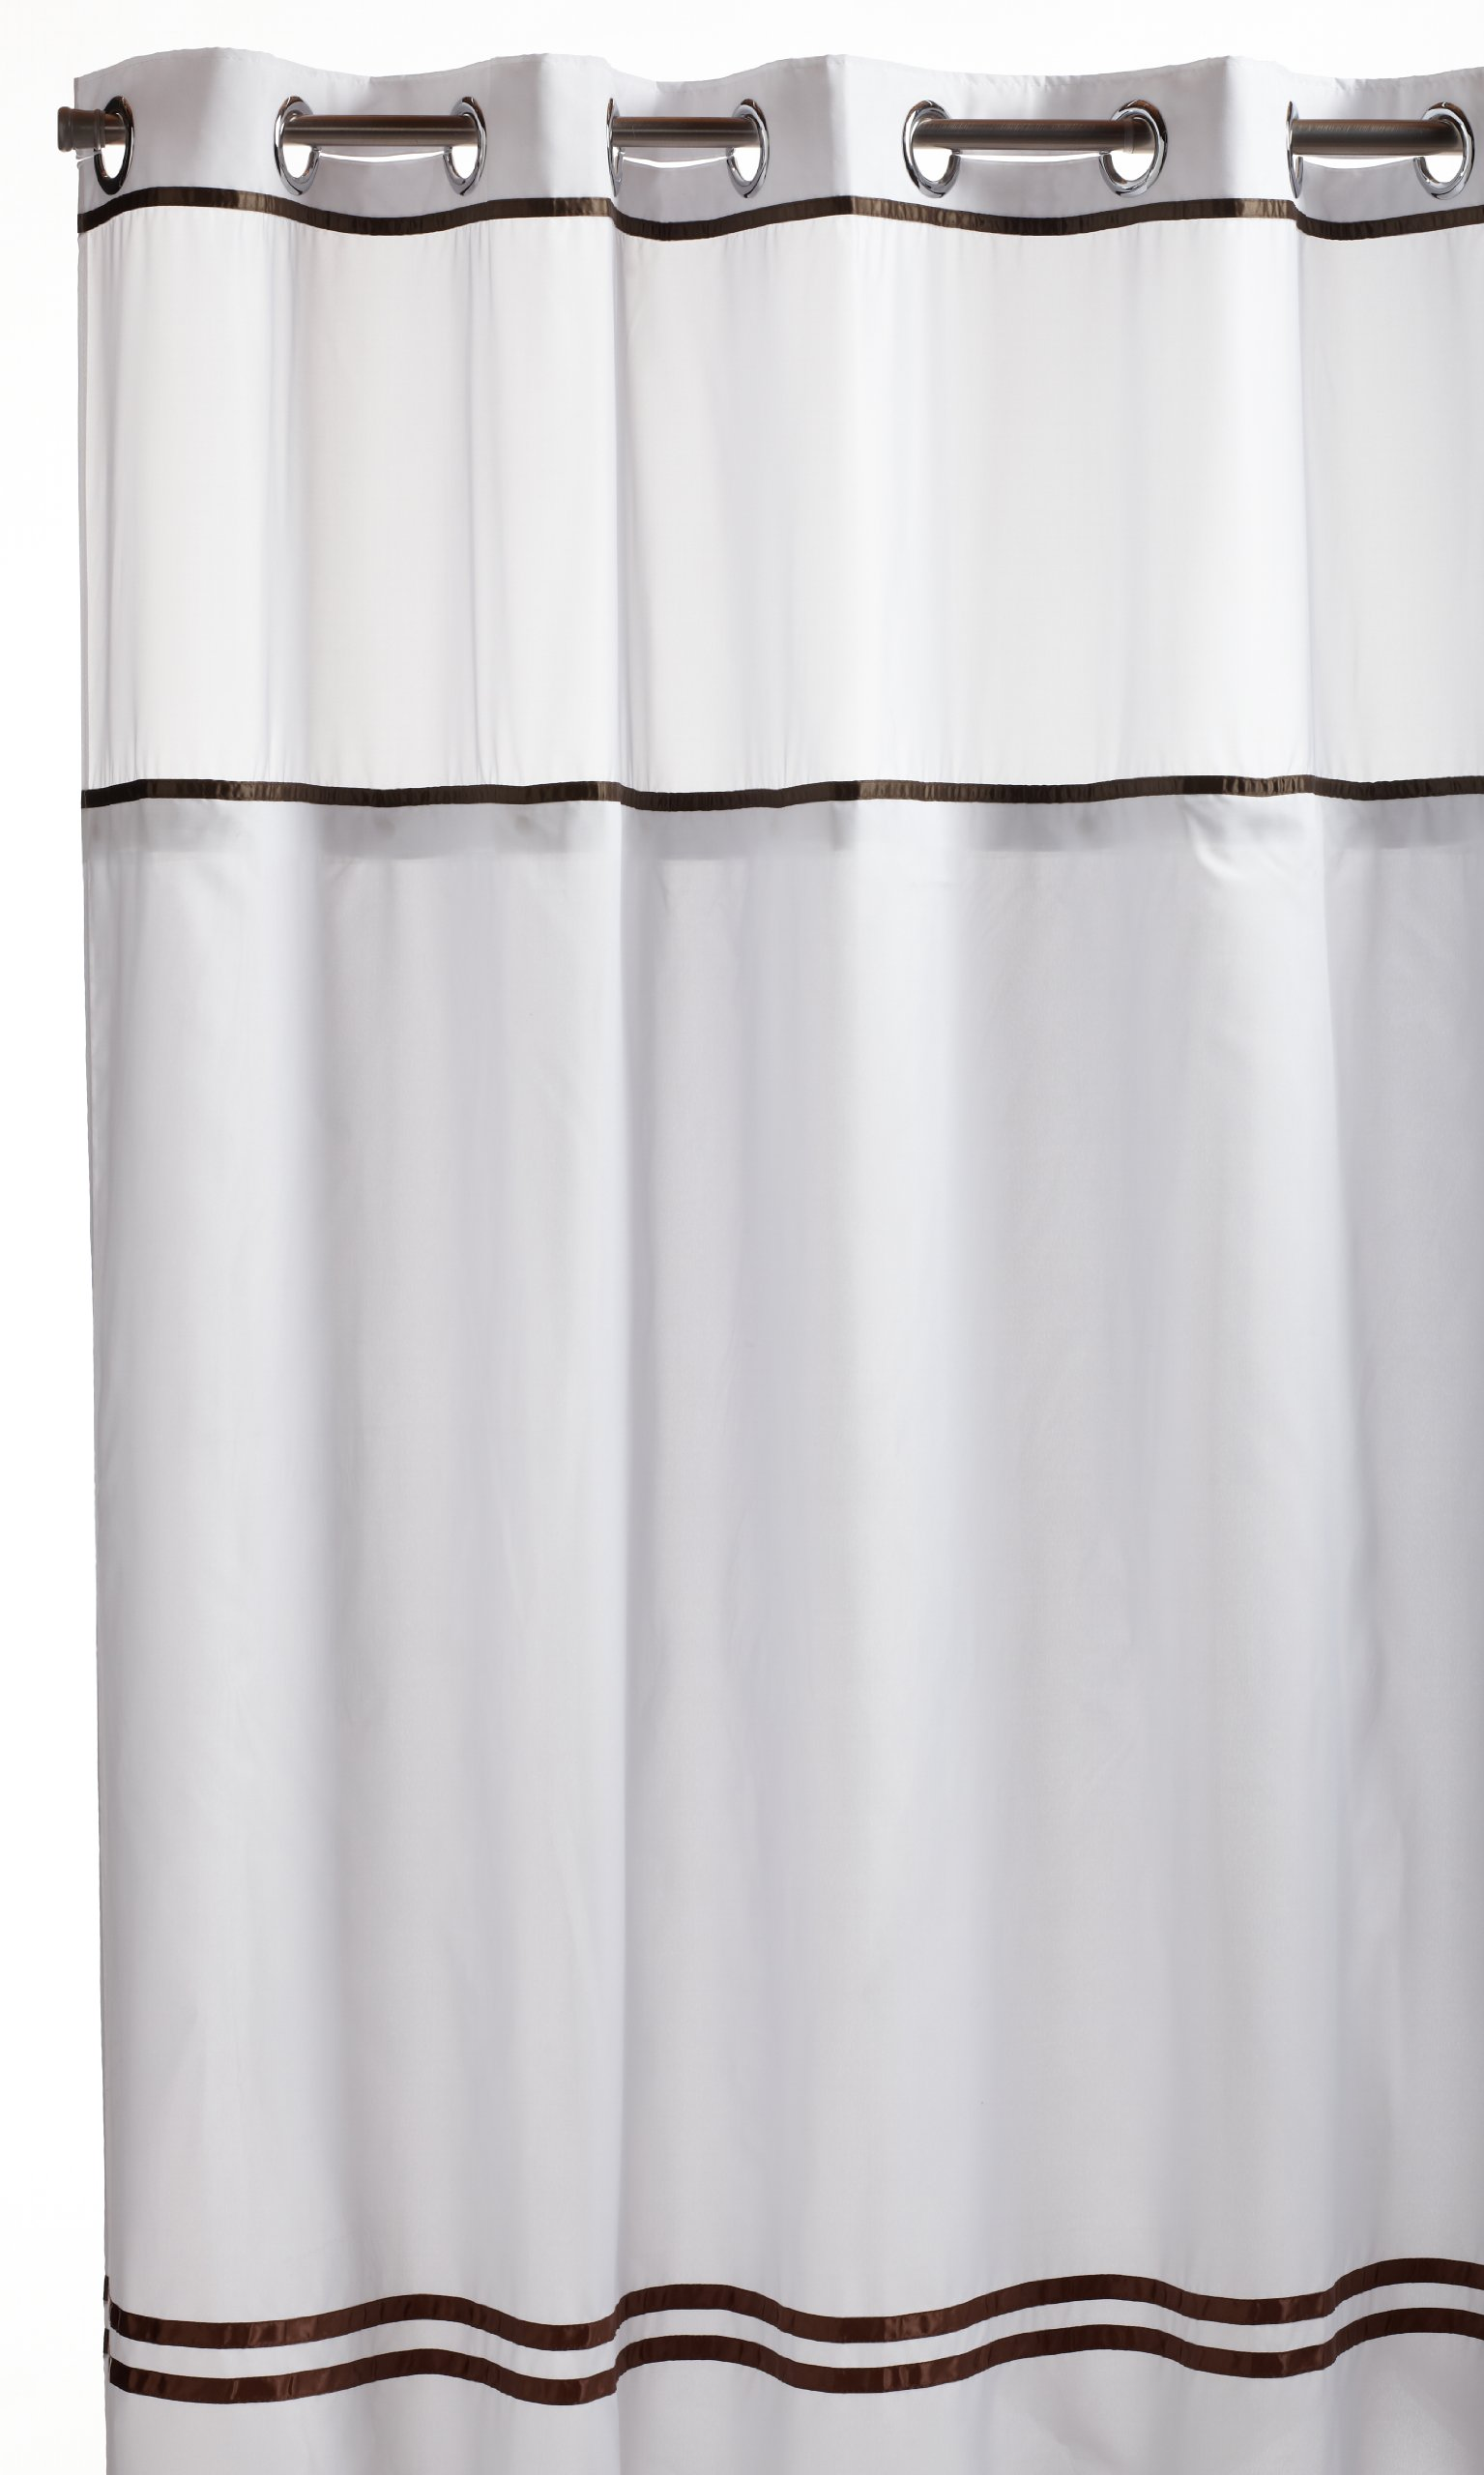 Arcs Angles Hookless RBH40ES305 Fabric Shower Curtain With Built In Liner